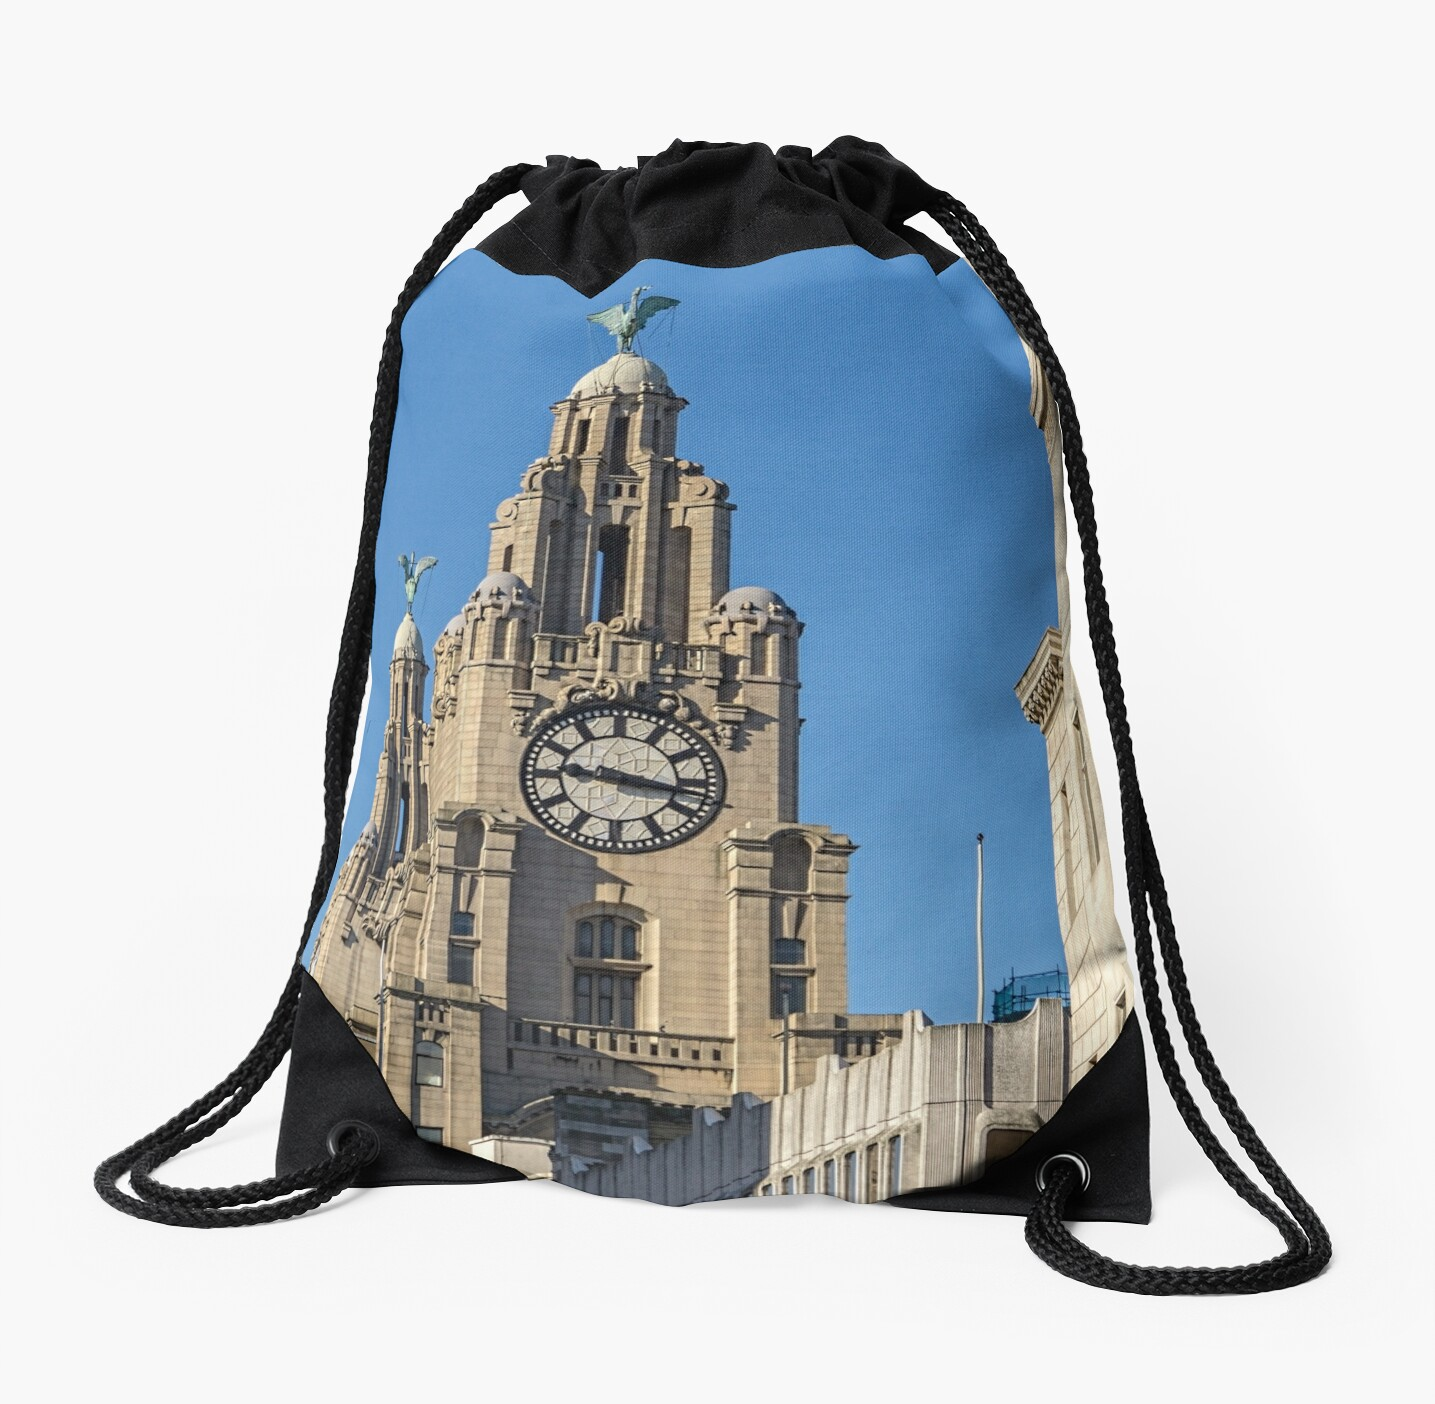 Royal Liver Building, Liverpool by Beverley Goodwin